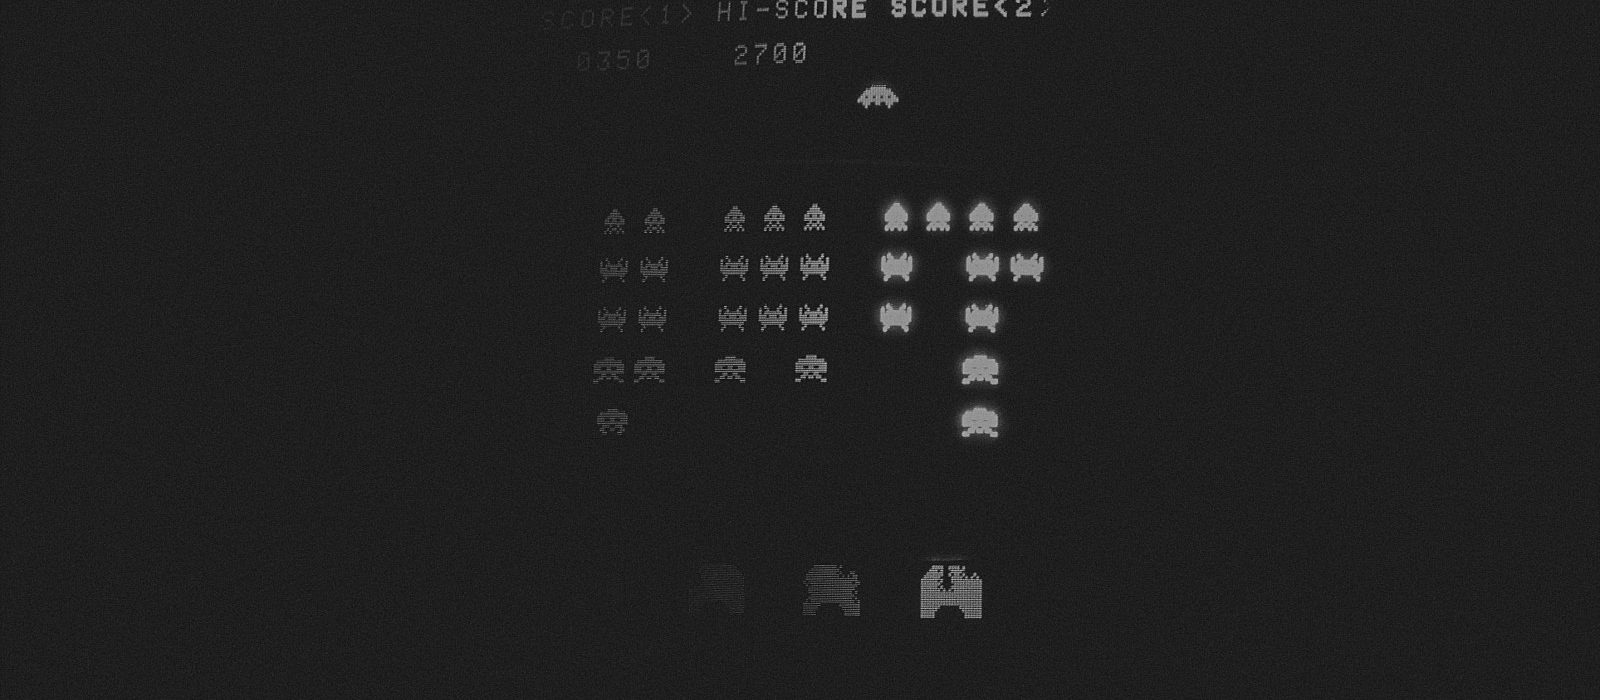 playing space invaders